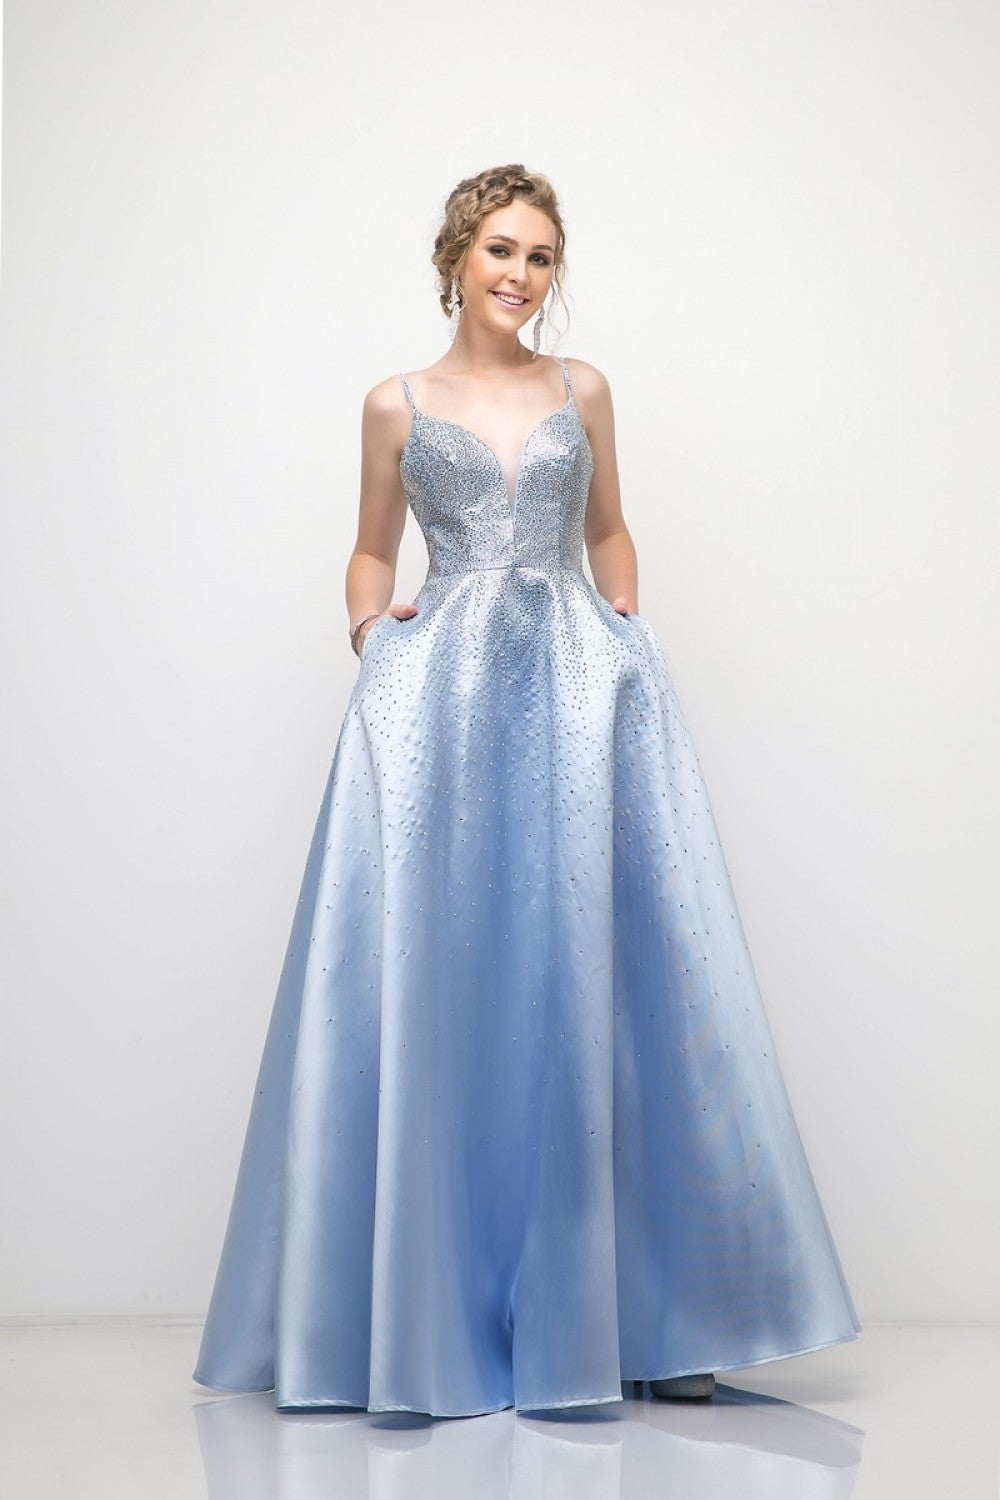 A-Line Satin Ball Gown With Stone Embellishment And Pockets